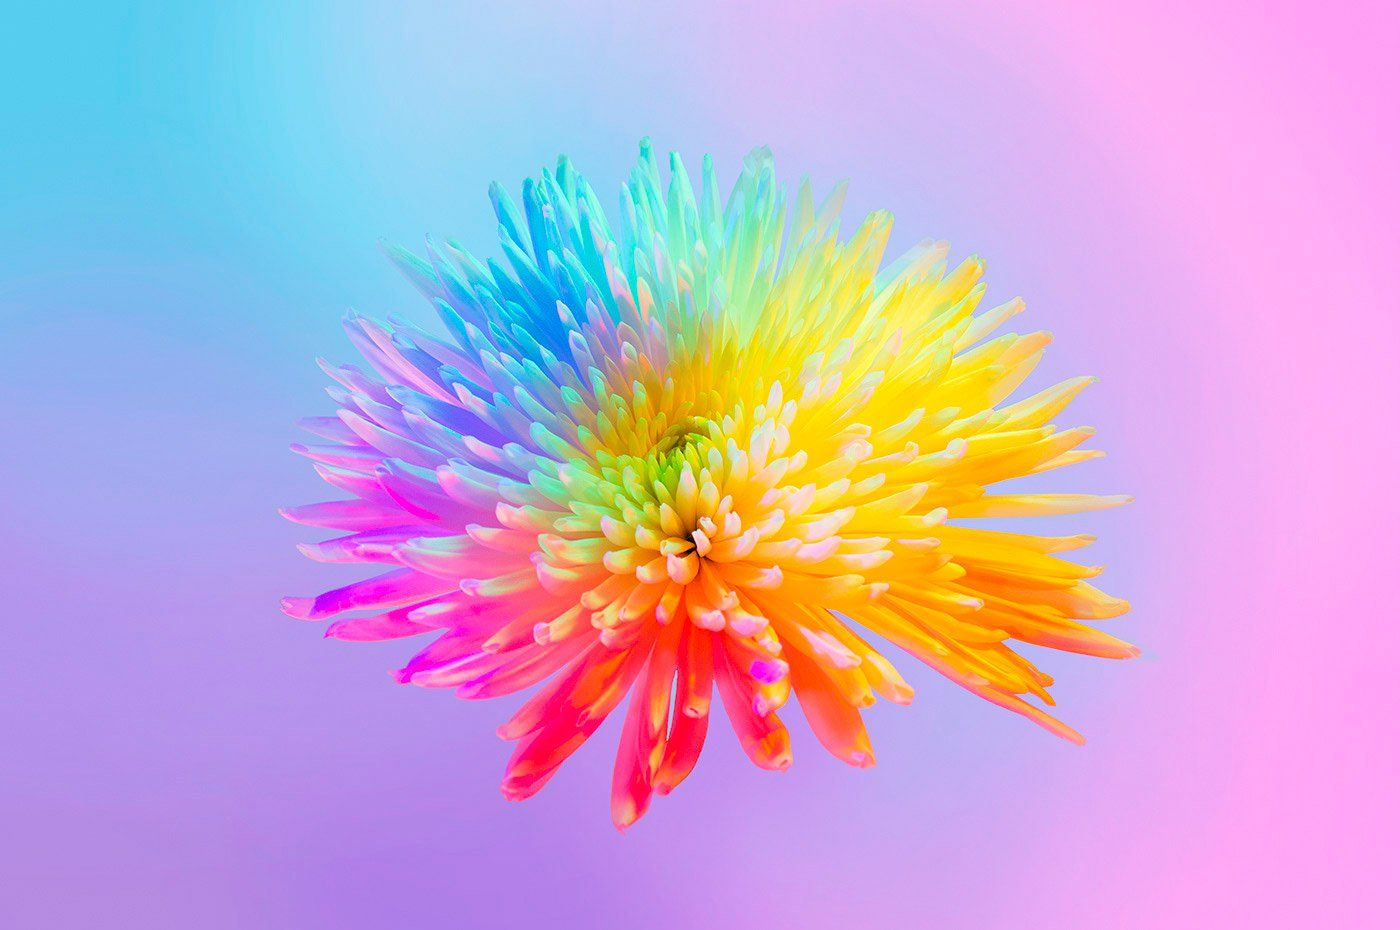 Neon Flowers Photography Art Direction By Claire Boscher